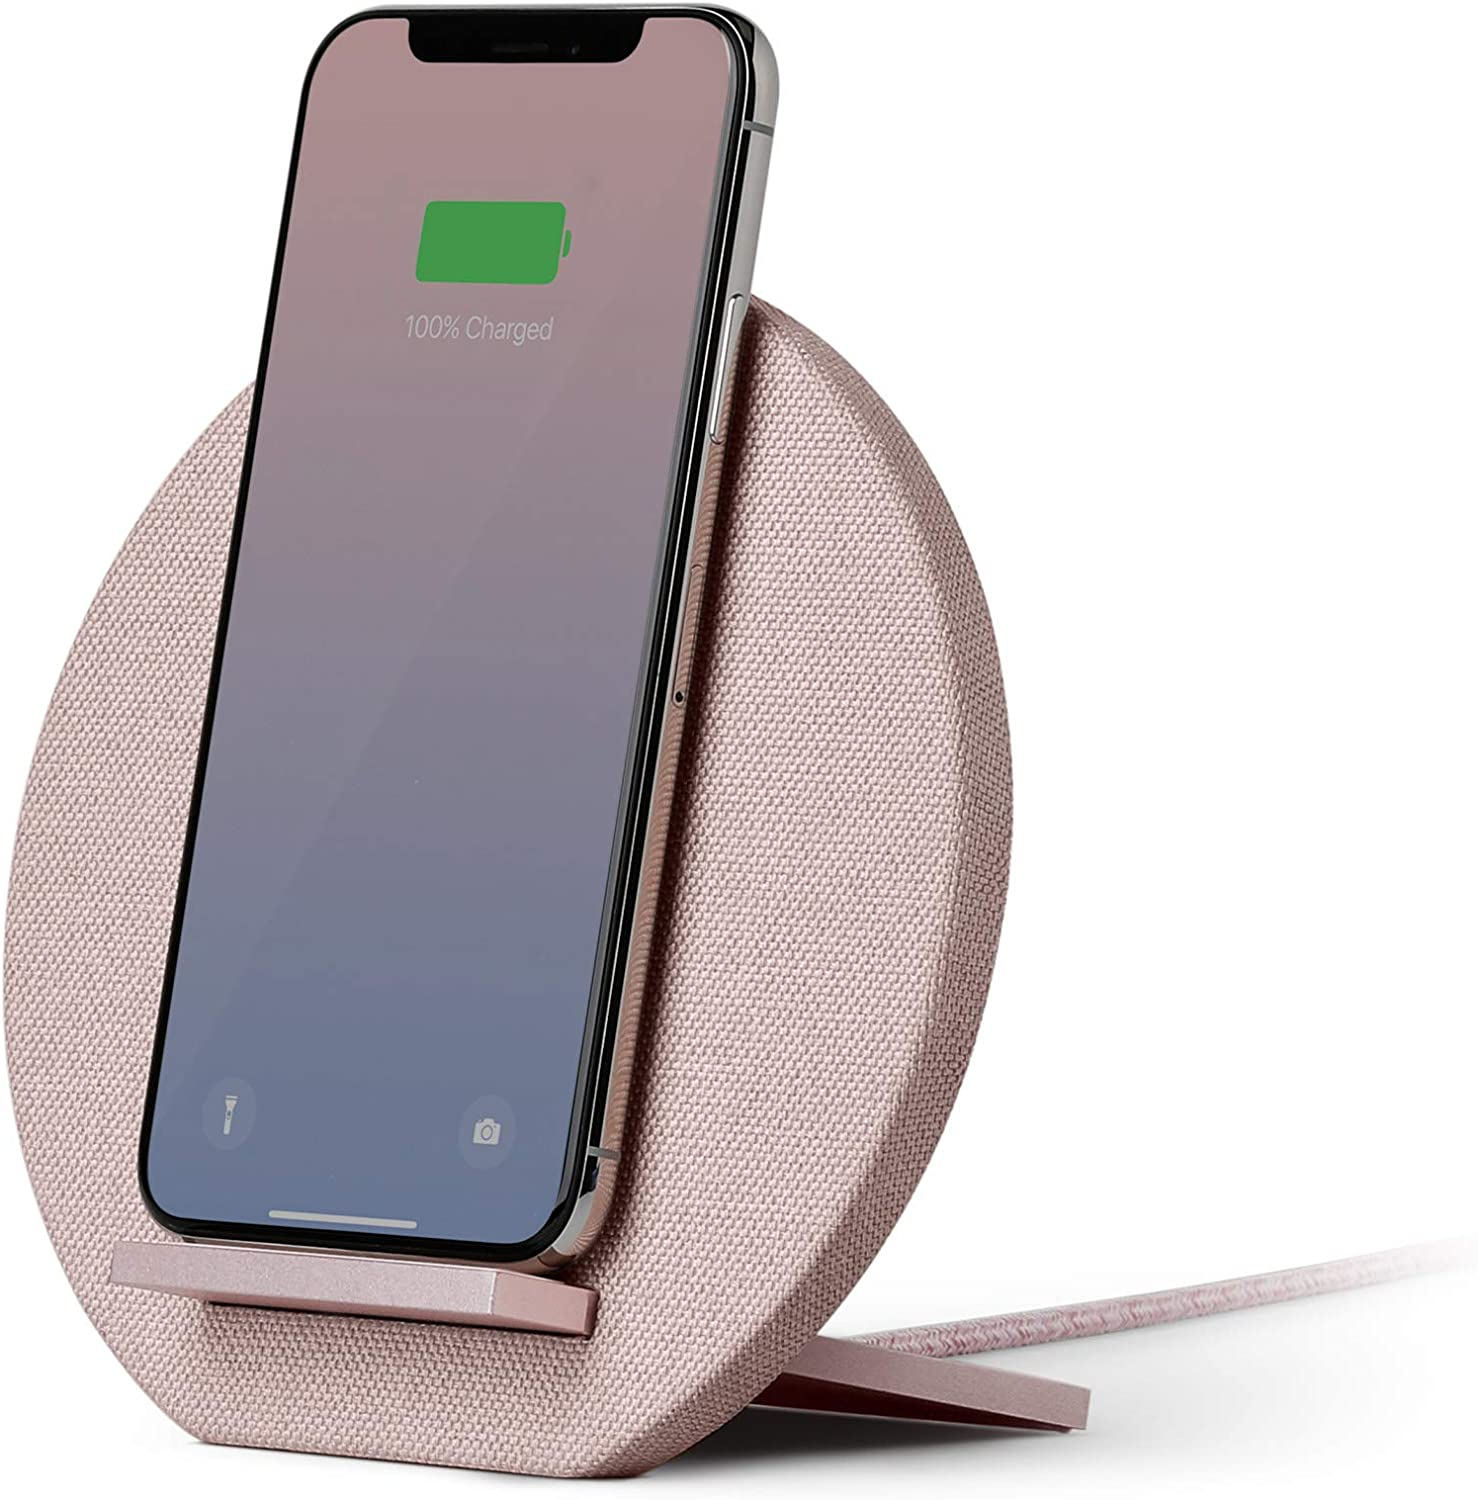 Native Union Dock Wireless Charger Stand - High Speed [Qi Certified] 10W Versatile Fast Wireless Charging Stand - Compatible with iPhone 12/12 Pro/12 Pro Max/12 mini/11/11 Pro/11 Pro Max (Rose)